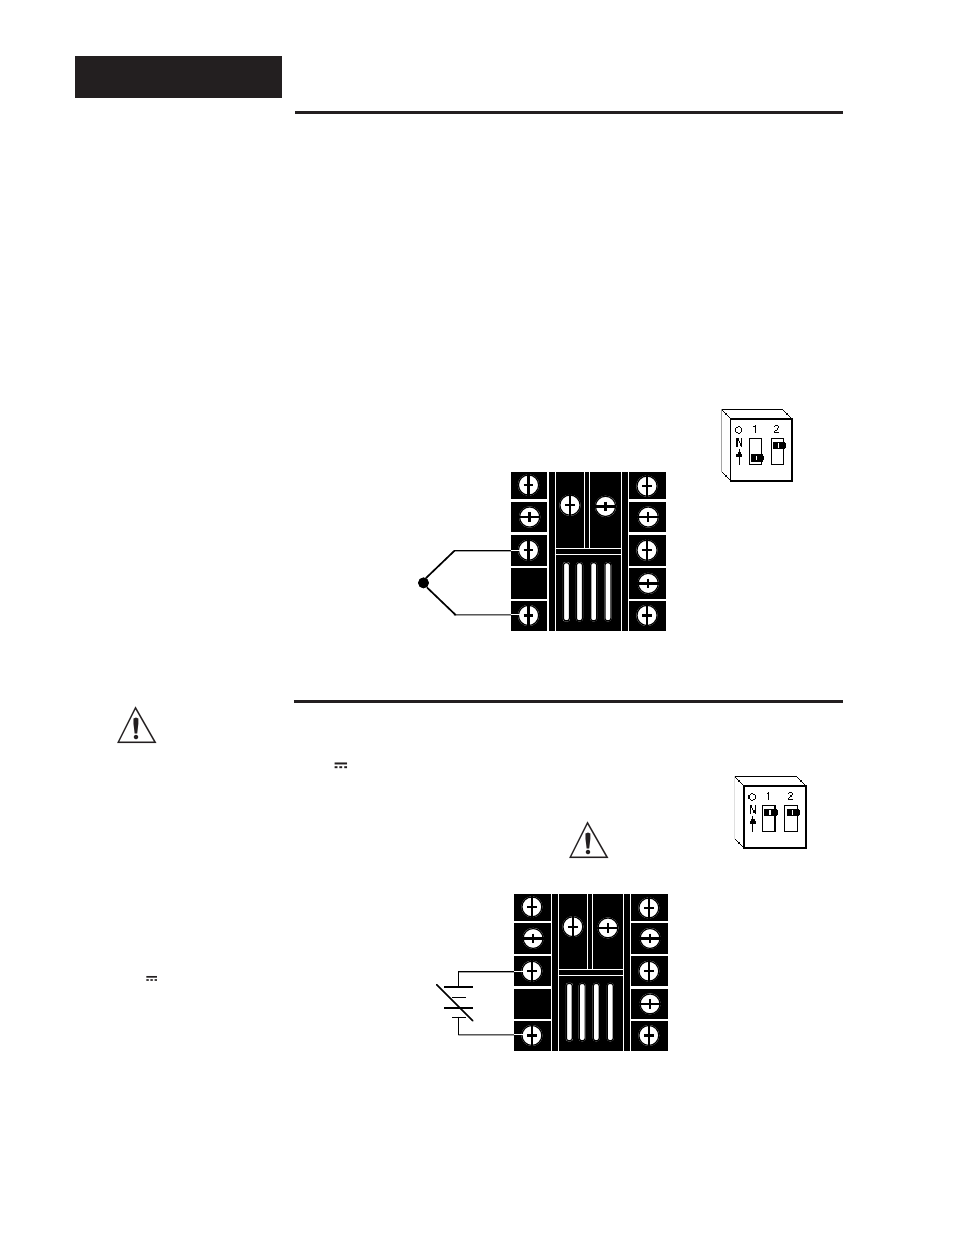 Input wiring, Sensor installation guidelines, Thermocouple